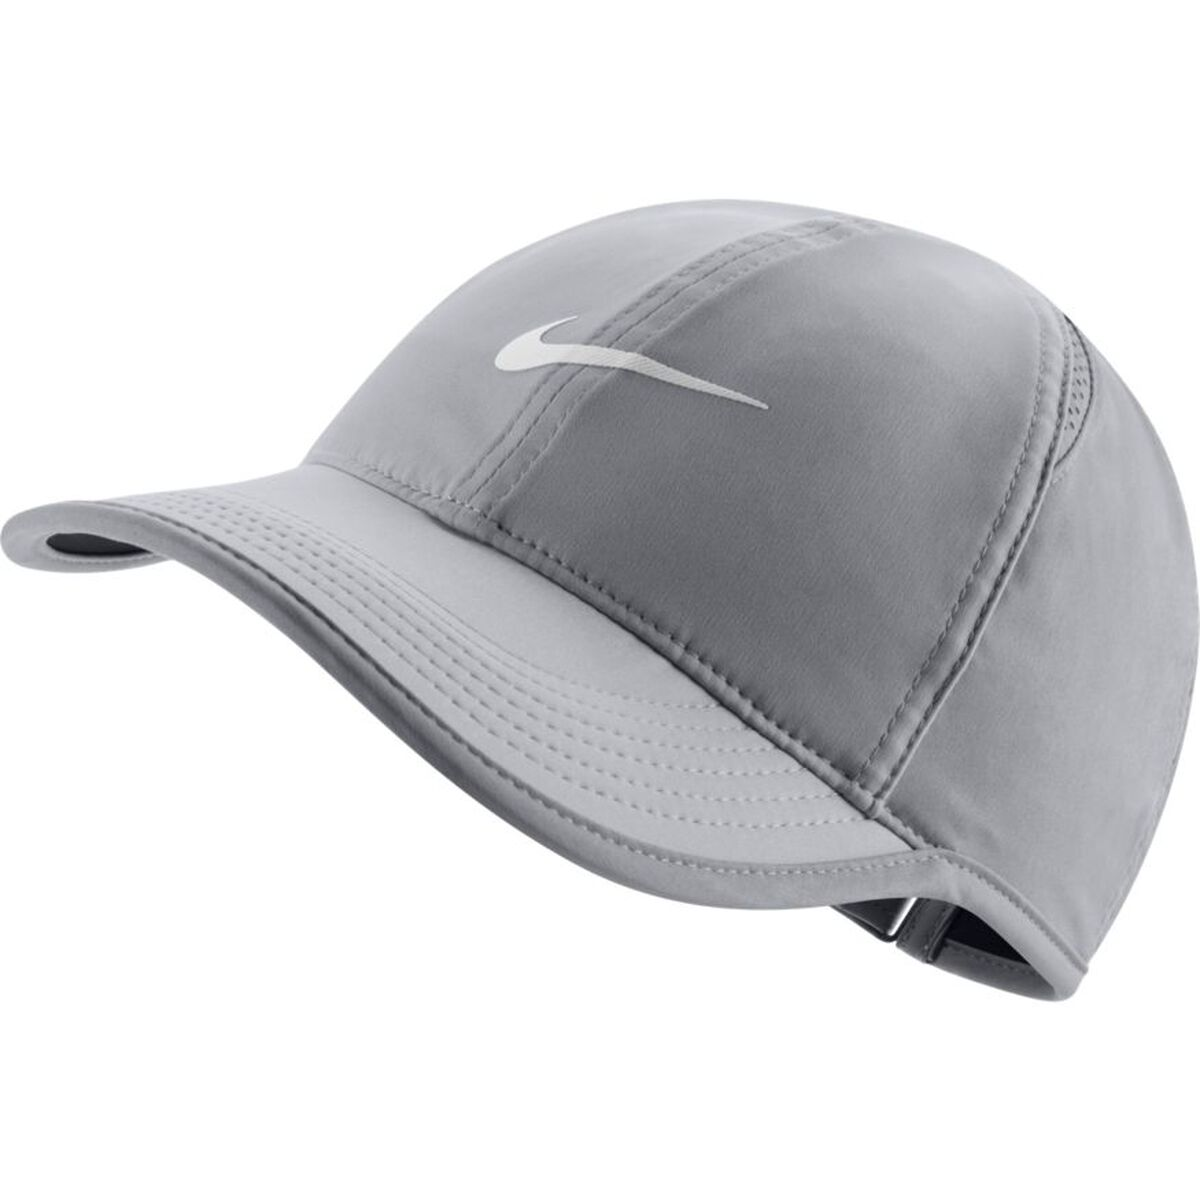 ba4c3f918d4cd Images. Nike Women  39 s NikeCourt AeroBill Featherlight Tennis Hat